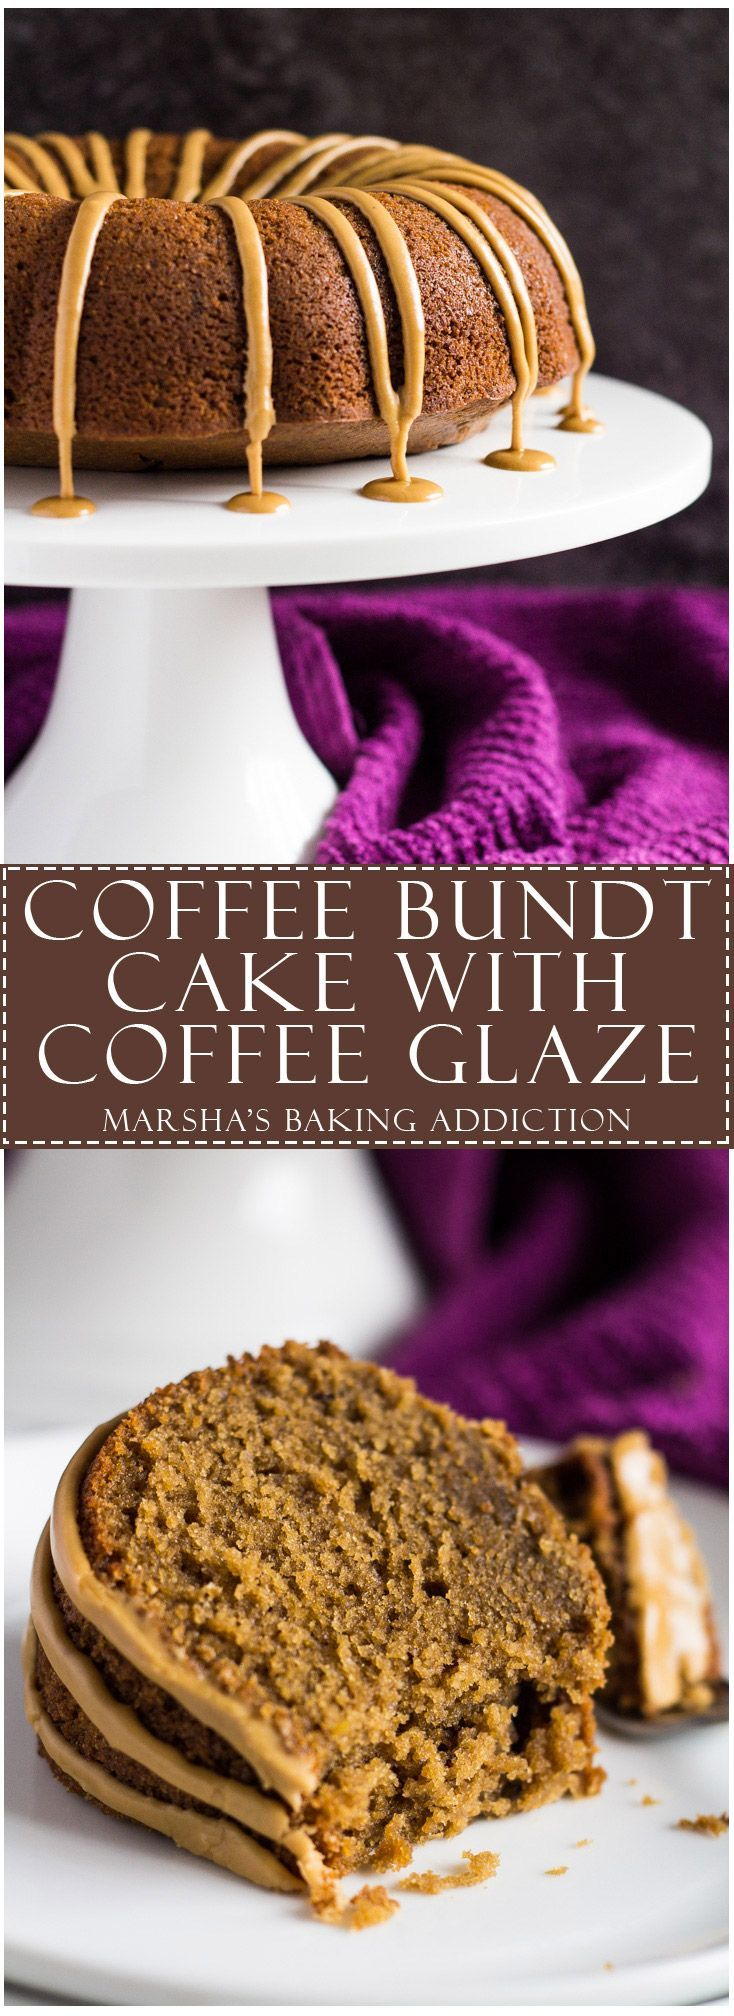 Coffee Bundt Cake | http://marshasbakingaddiction.com /marshasbakeblog/